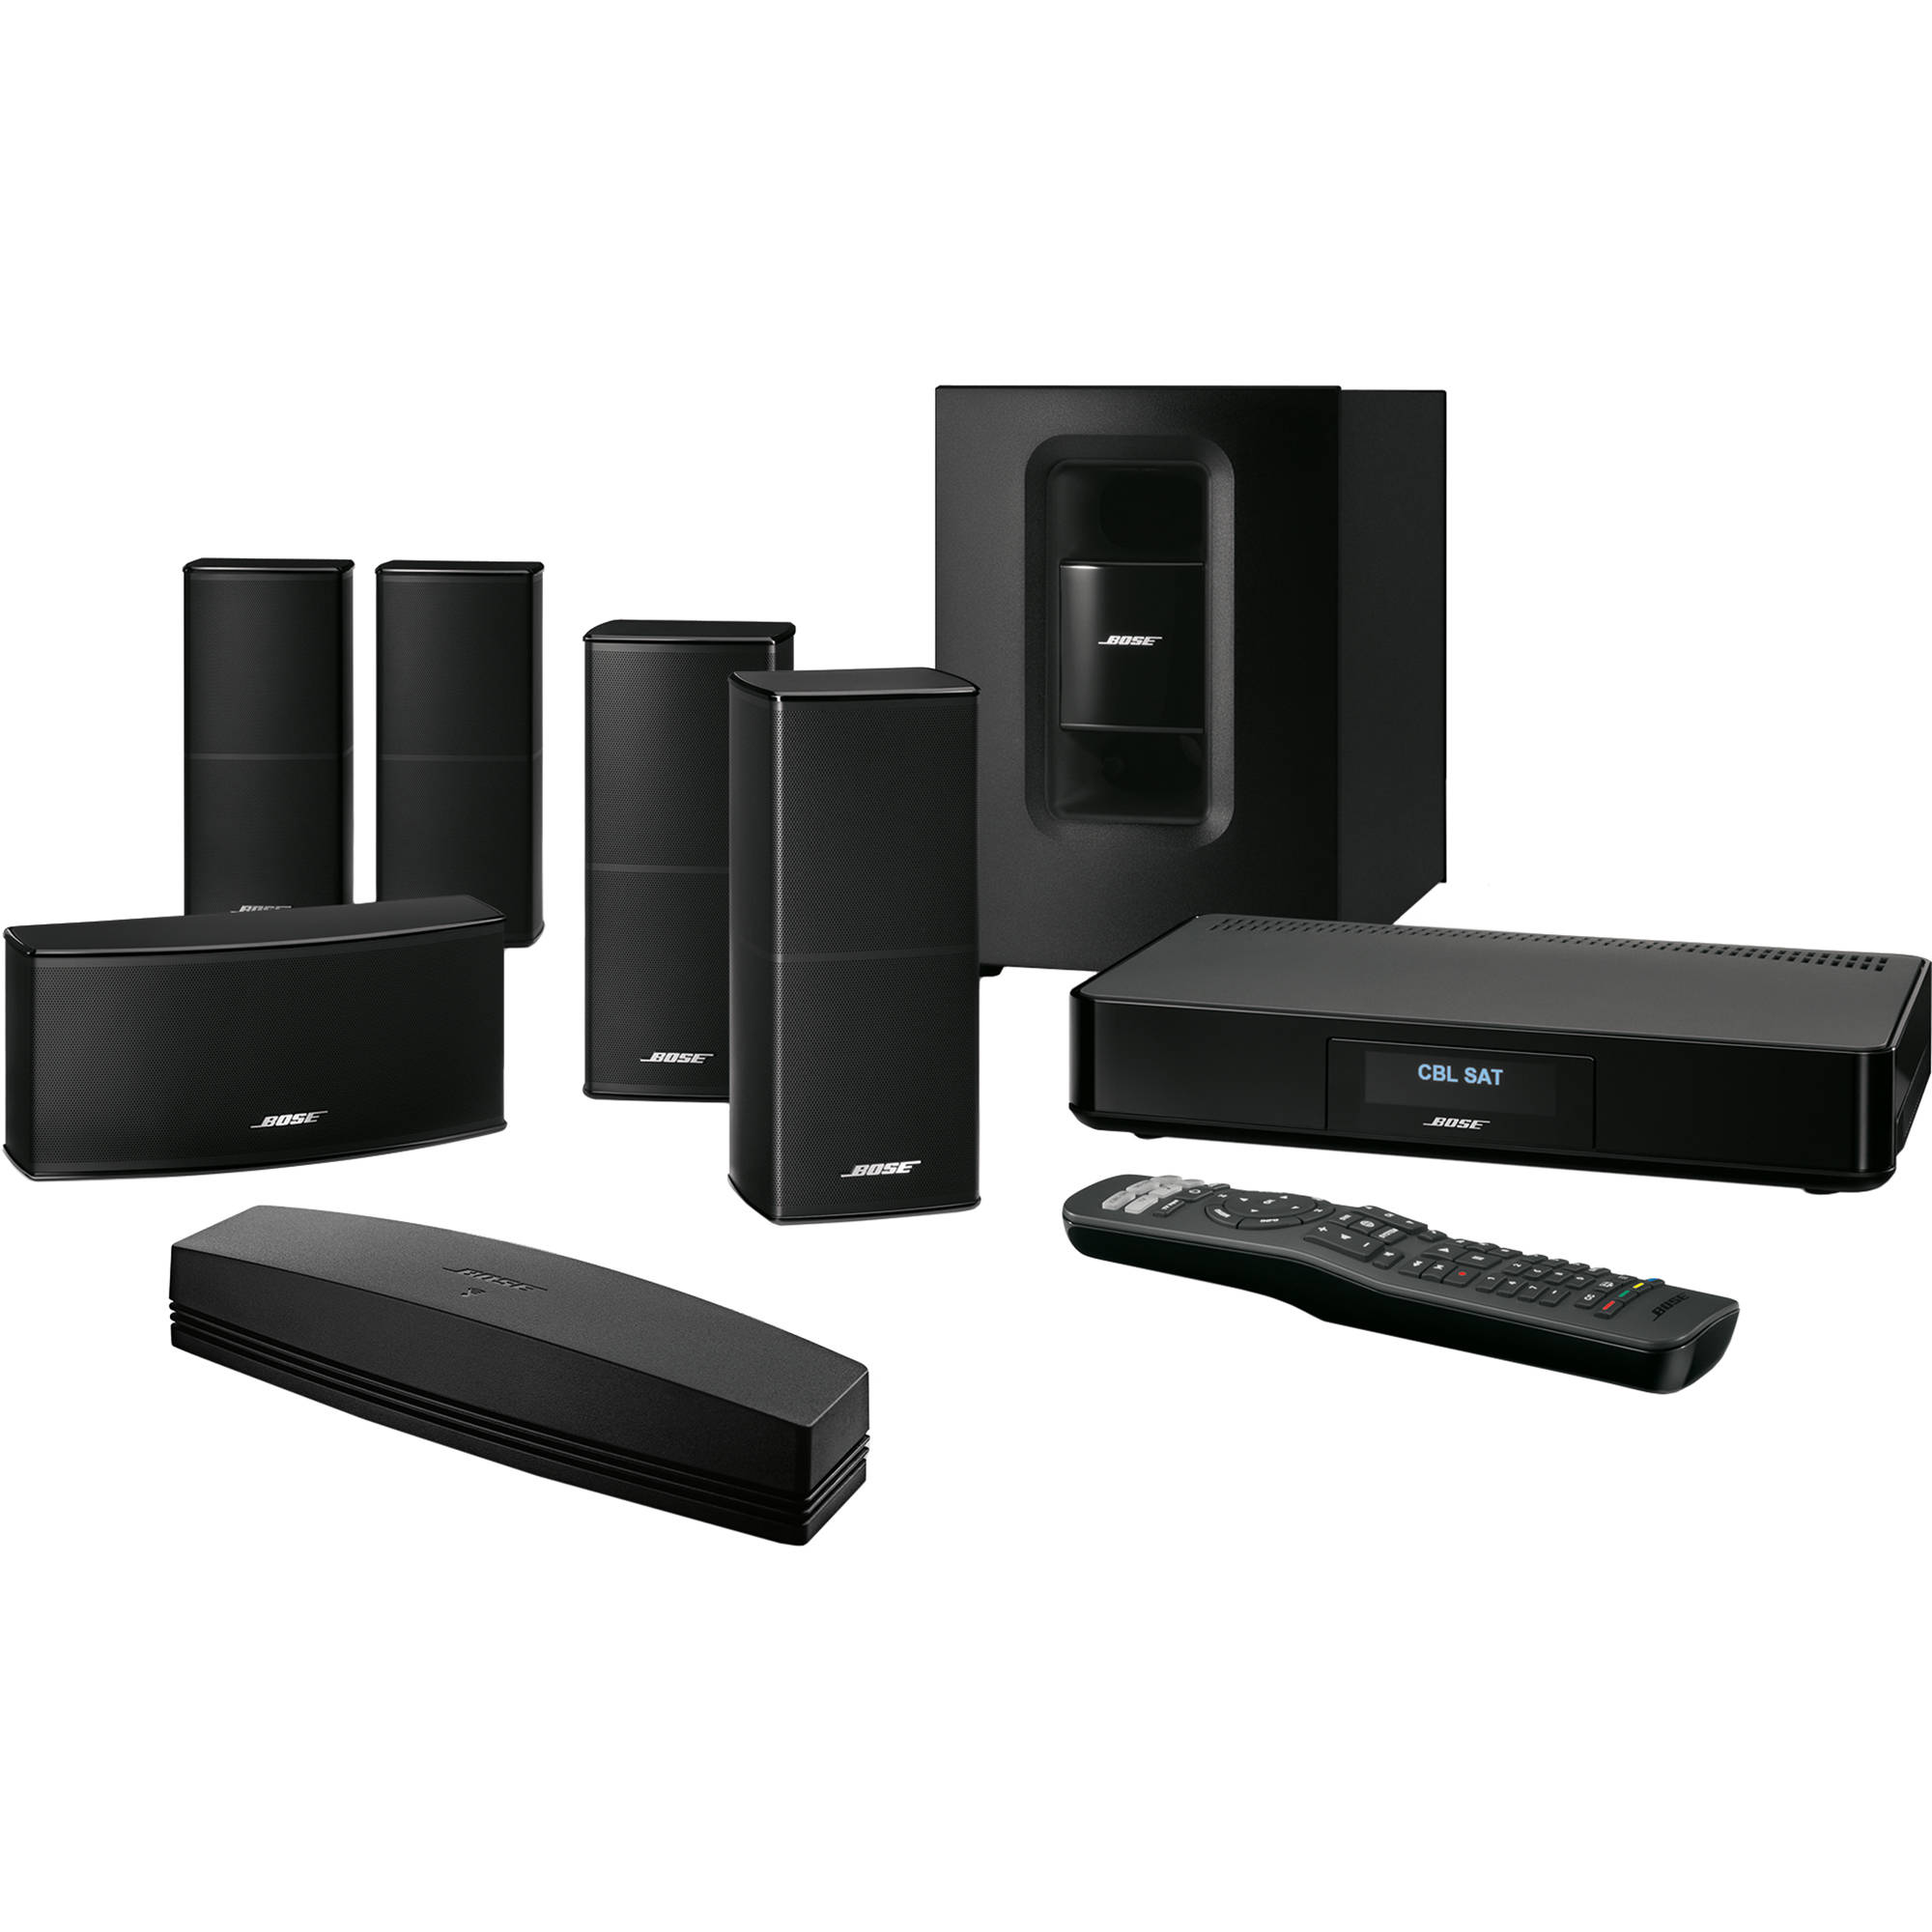 bose soundtouch 520 home theater system black 738377 1100 b h. Black Bedroom Furniture Sets. Home Design Ideas